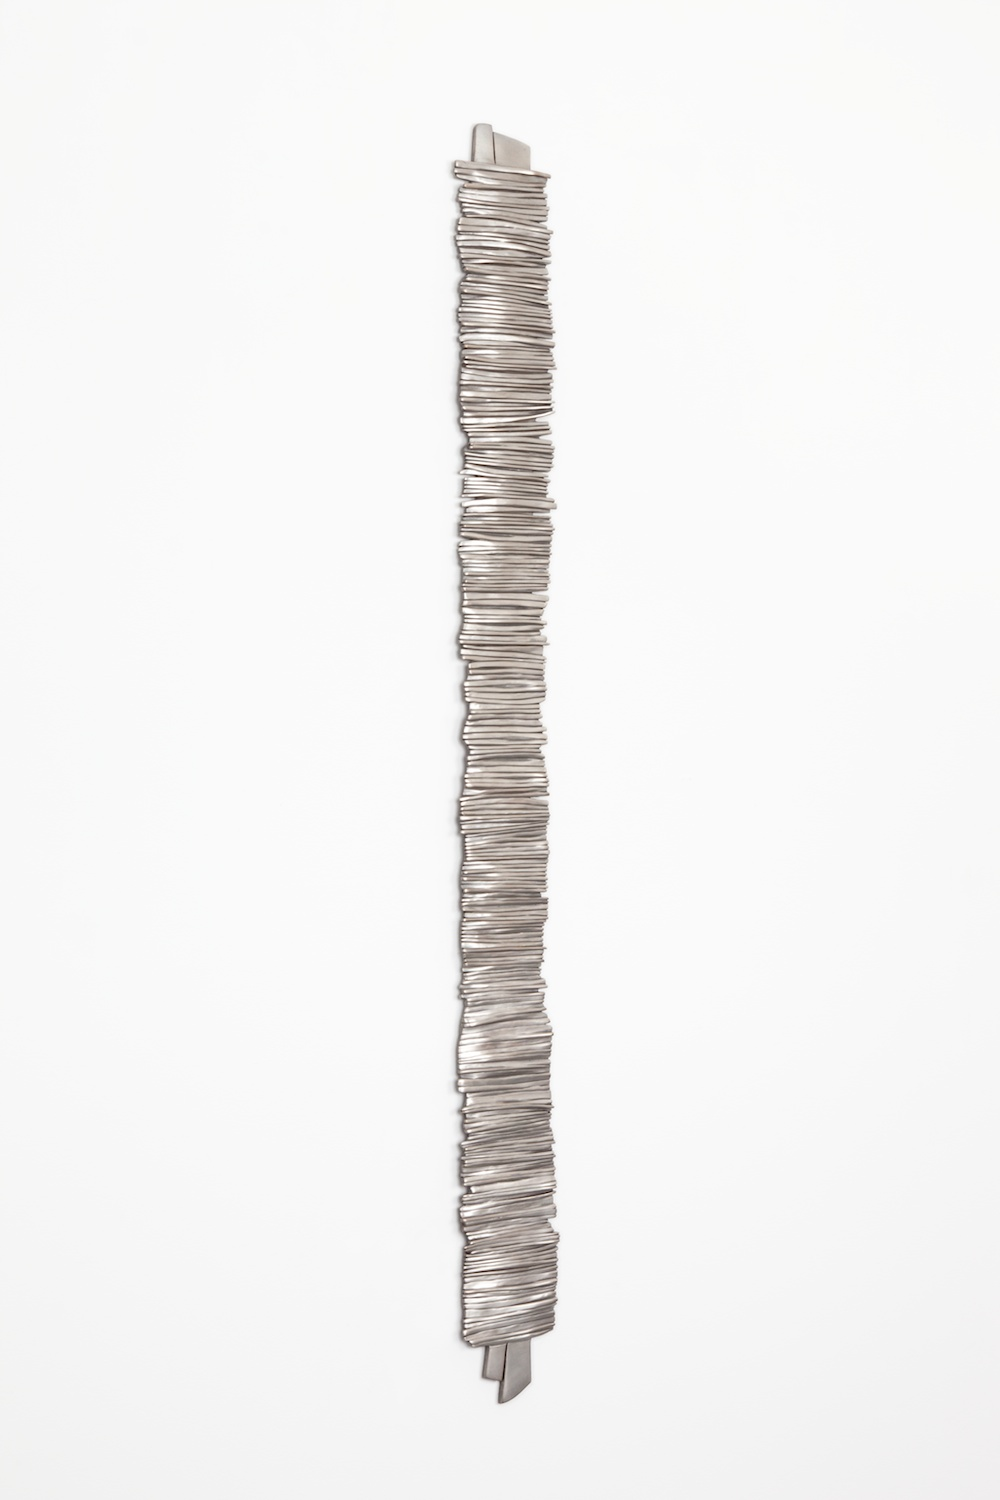 Anthony Pearson  Untitled (Tablet)  2012 Bronze relief with silver nitrate patina 51 ½h x 4 ½w in AP319